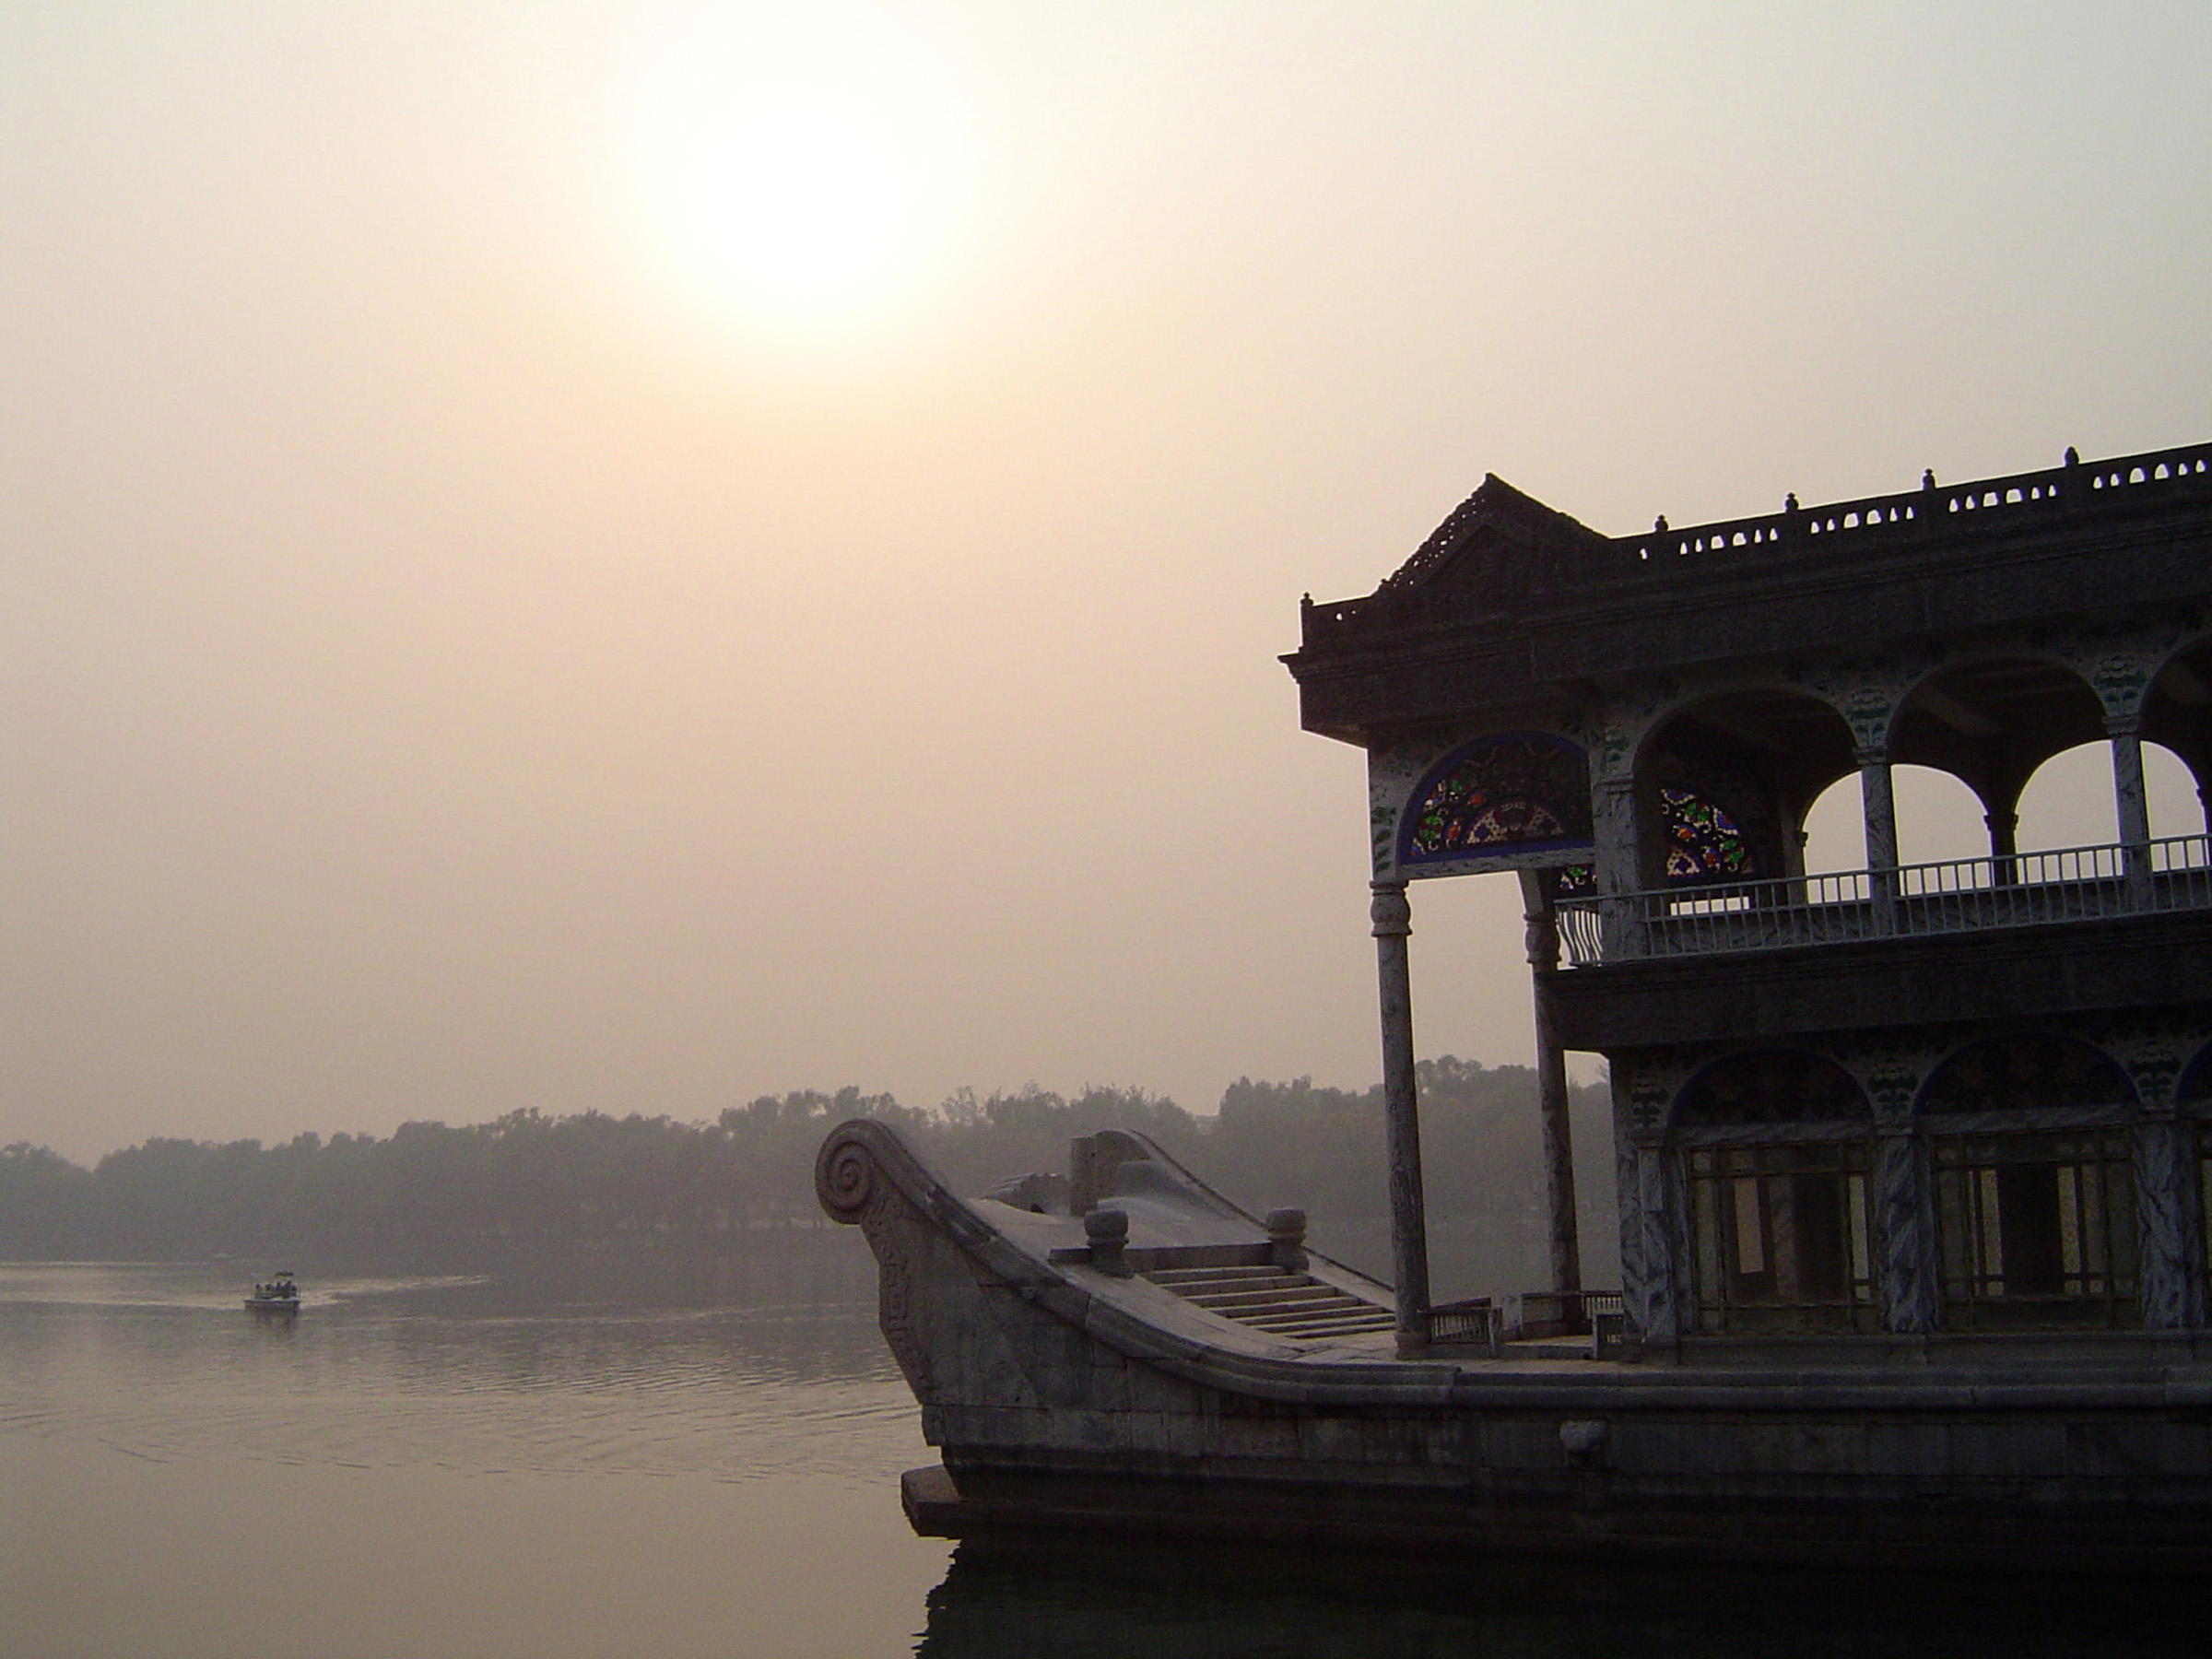 Ornate Chinese house boat with an upper arched covered viewing deck and living quarters below on a tranquil misty lake